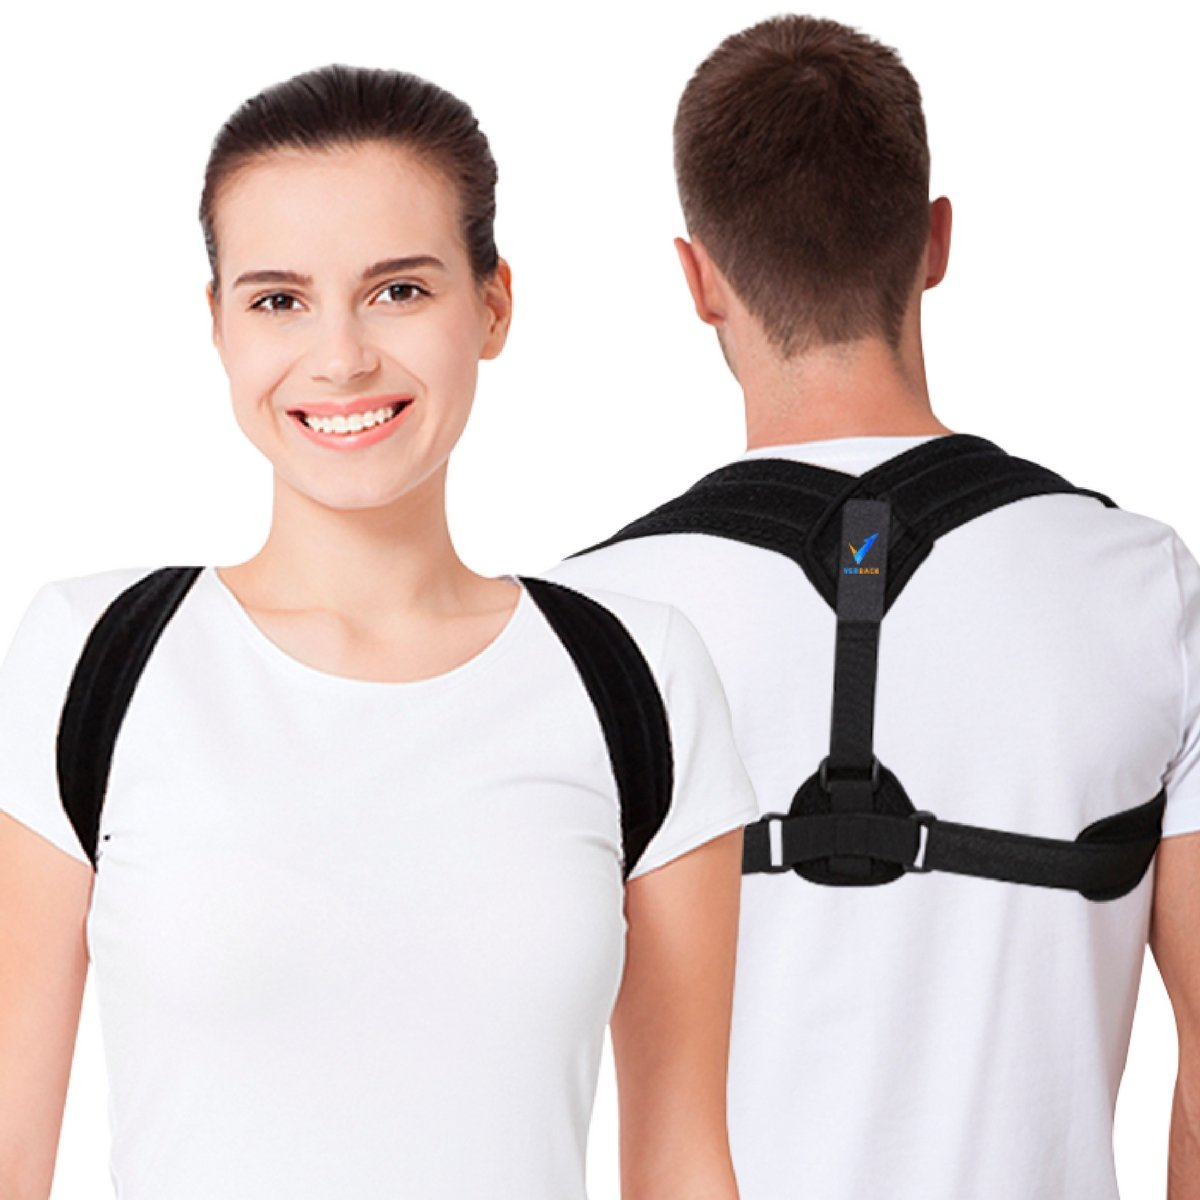 Back Posture Corrector for Women and Men by Verback - Effective Back Straightener for Shoulder Support – Comfortable Clavicle Brace to Discreetly Use Everywhere